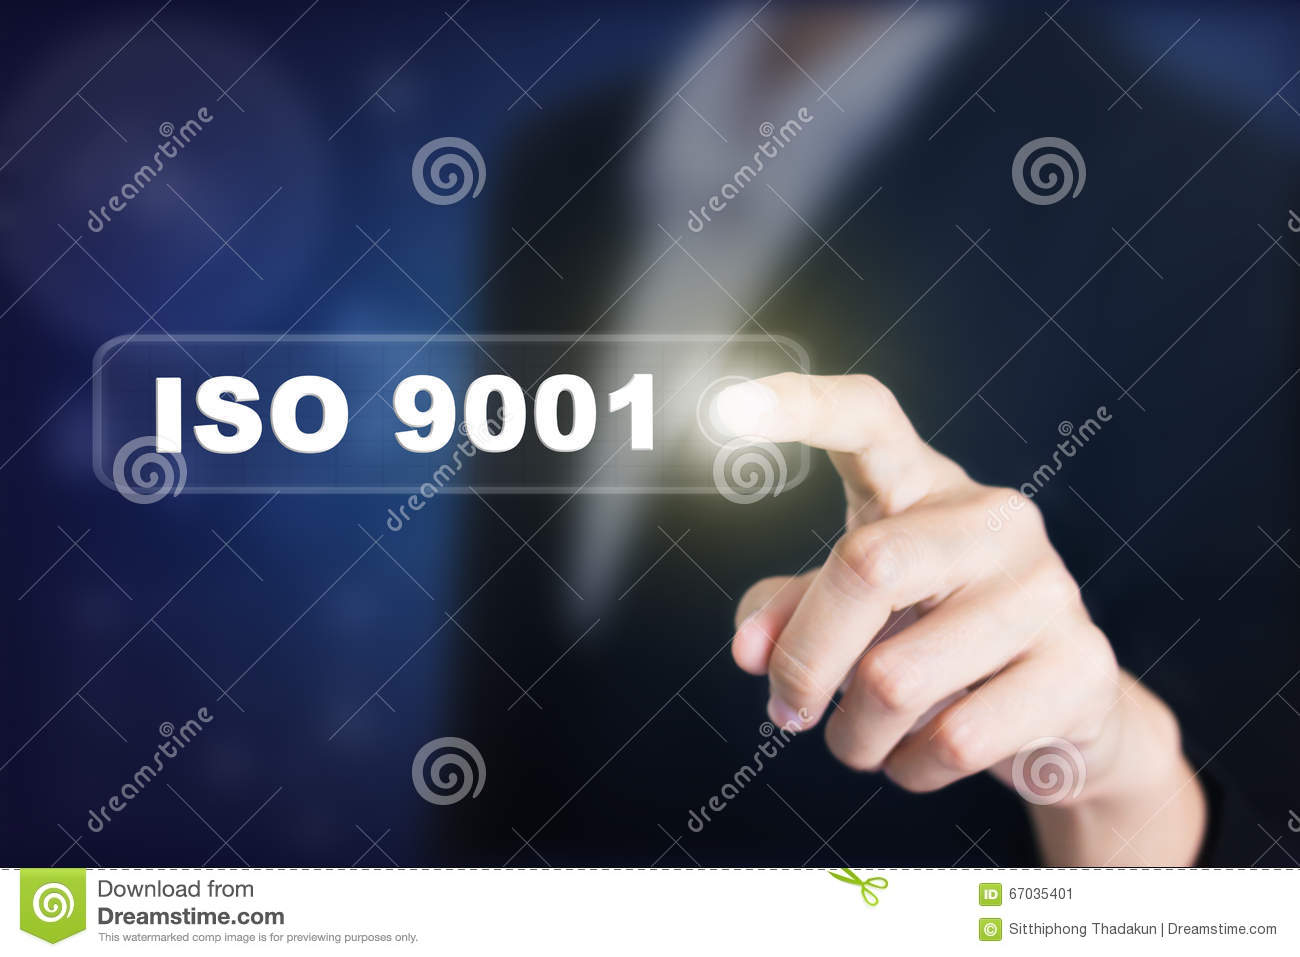 Businessman pressing a ISO 9001 concept button.